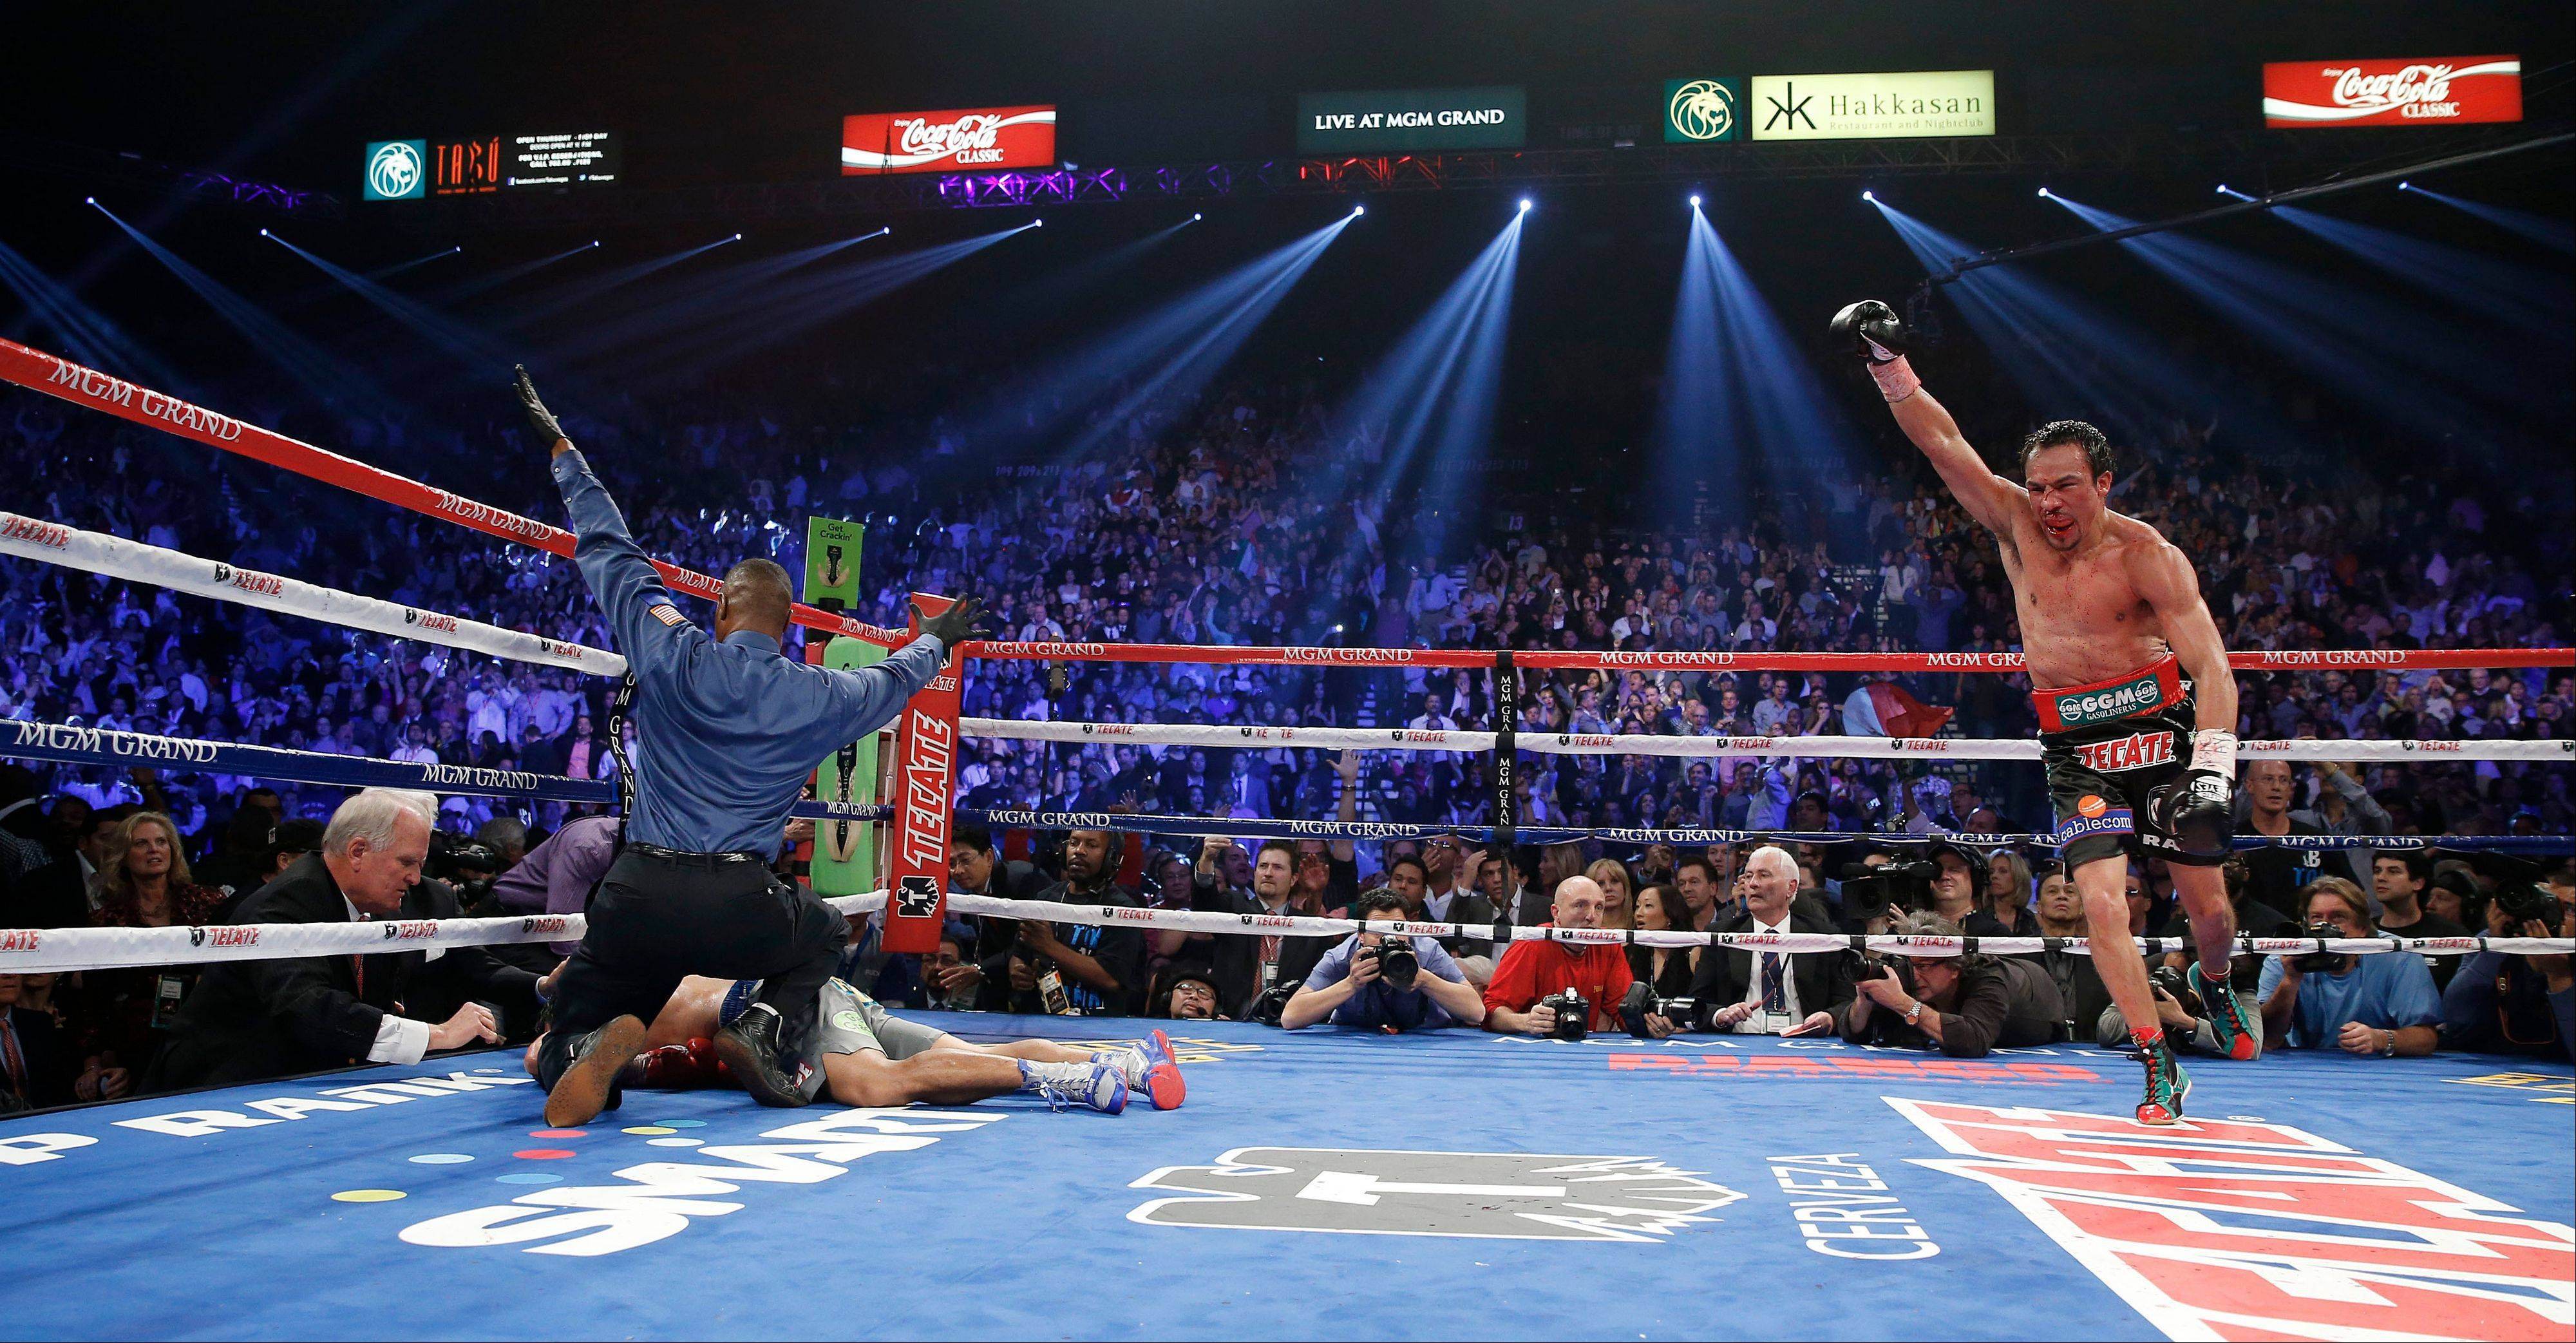 Referee Kenny Bayless, left, calls the fight as Juan Manuel Marquez, from Mexico, right, celebrates after he knocked out Manny Pacquiao, from the Philippines.